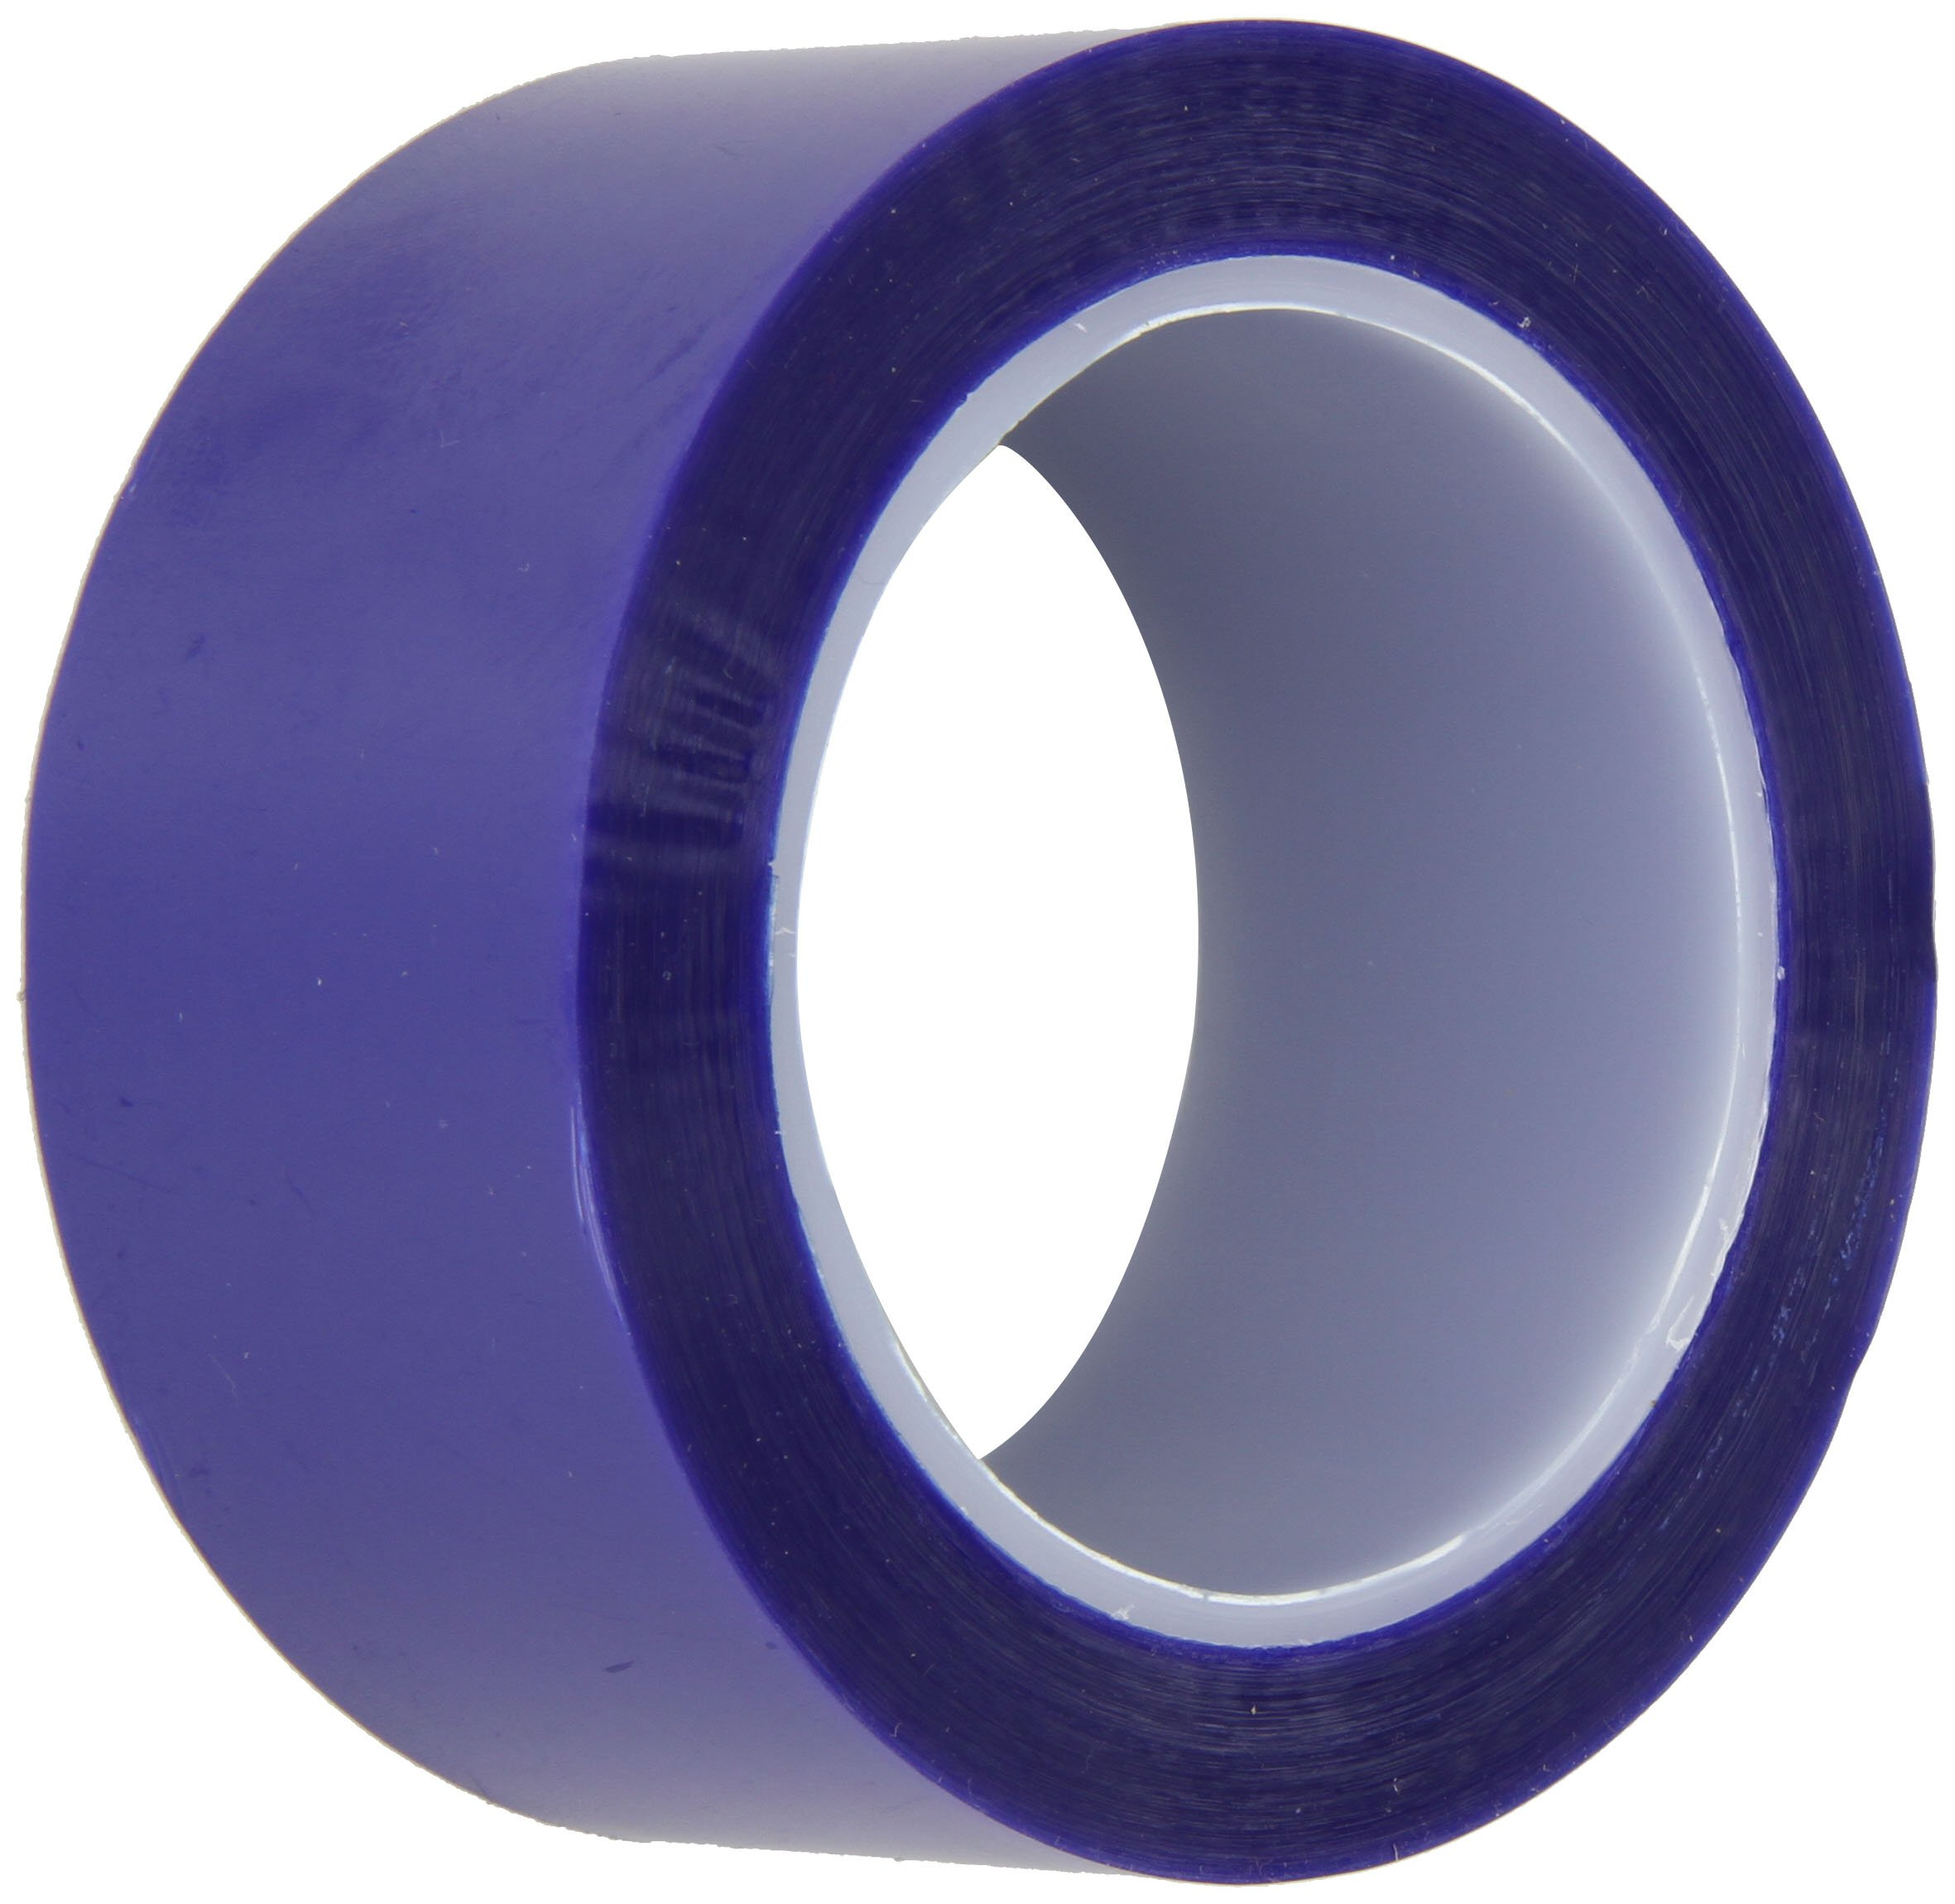 Maxi Flash Break Silicone Film Electrical Tape, 2.5 mil Thick, 72 yds Length, 2'' Width, Blue